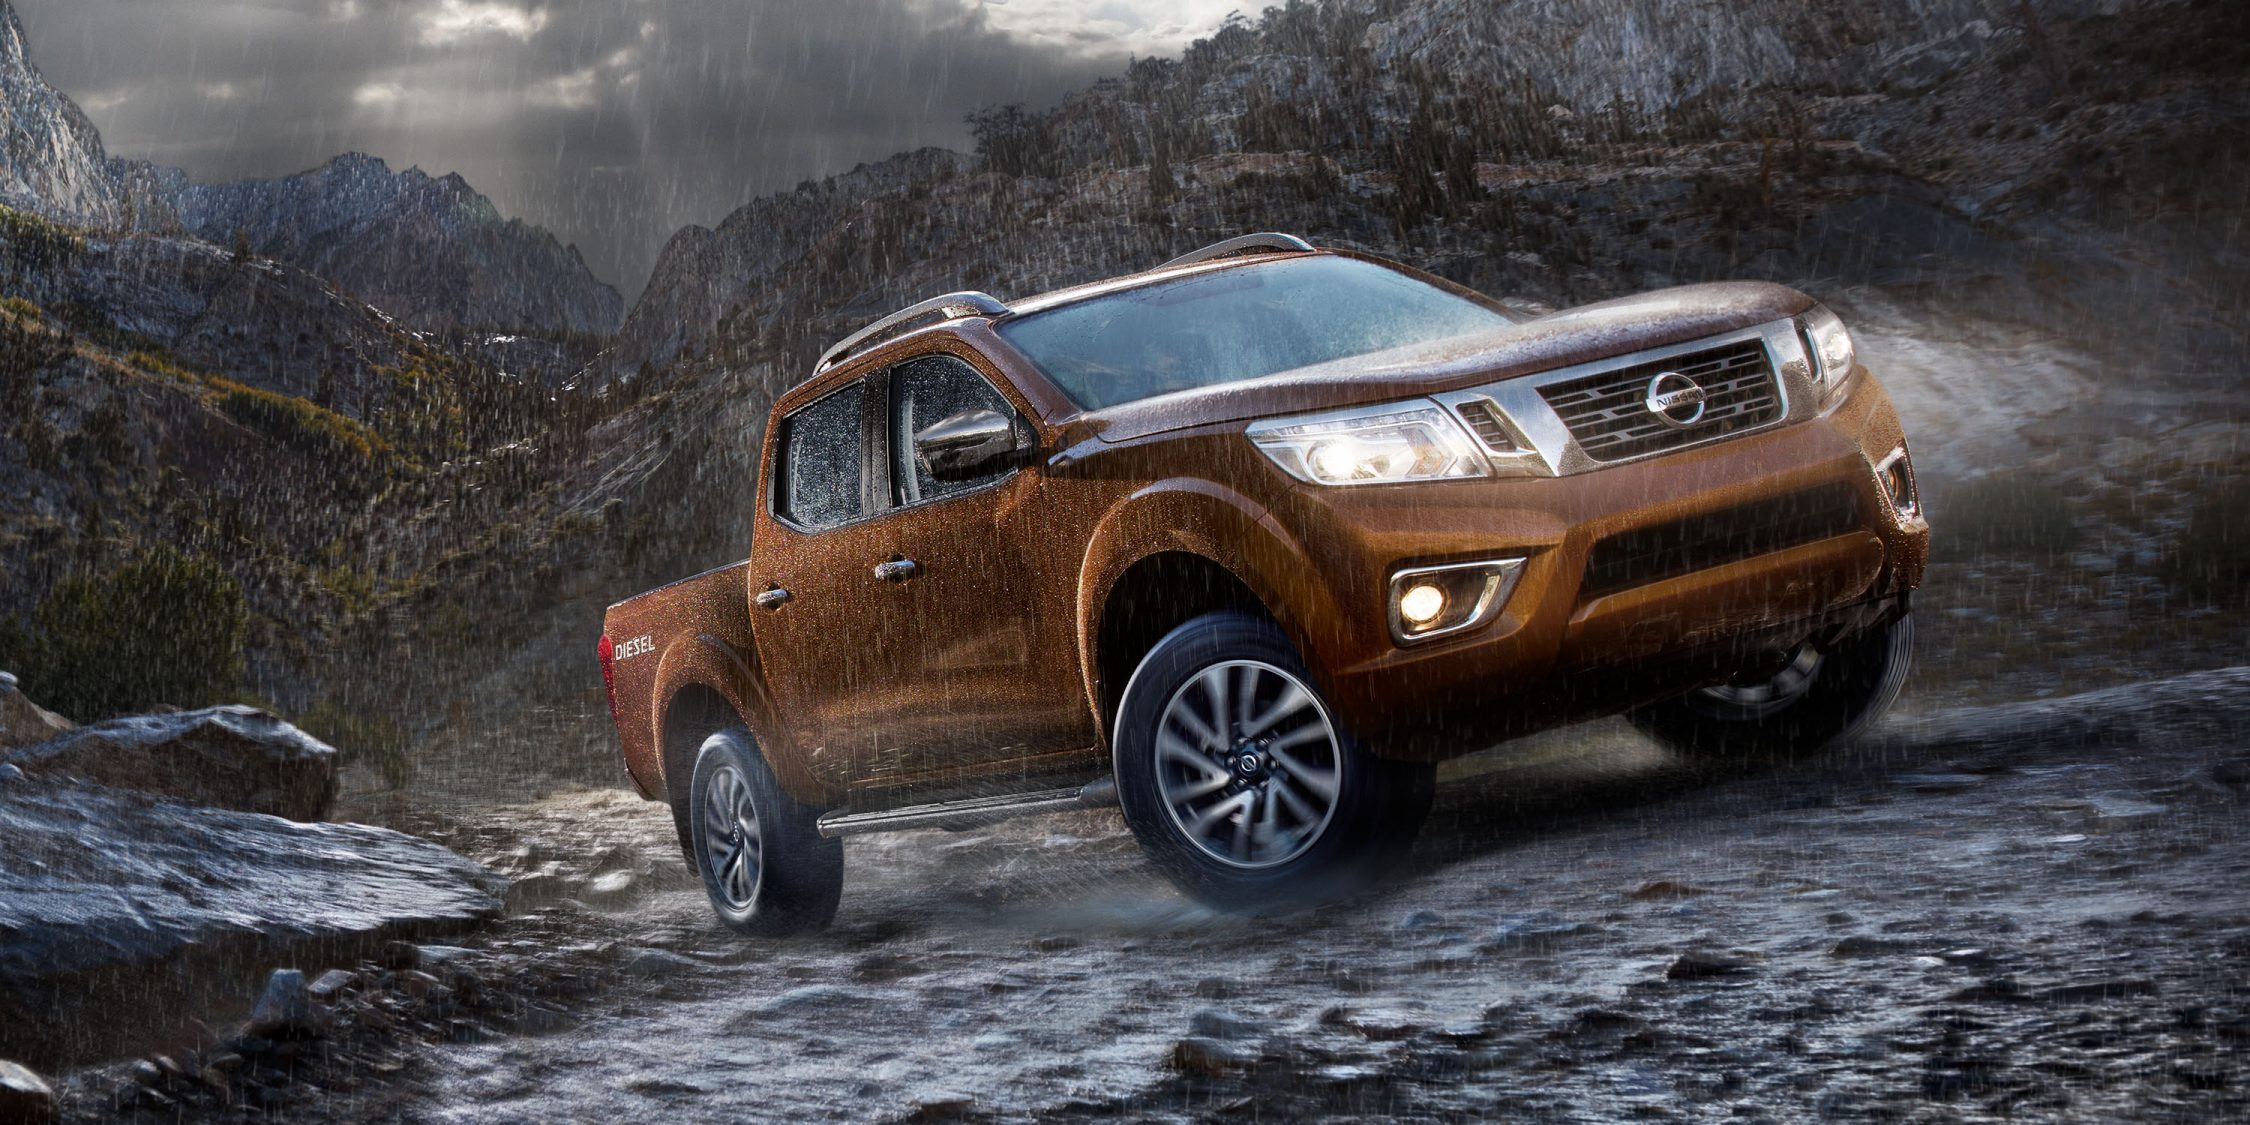 Nissan Navara driving up mountain trail in rain